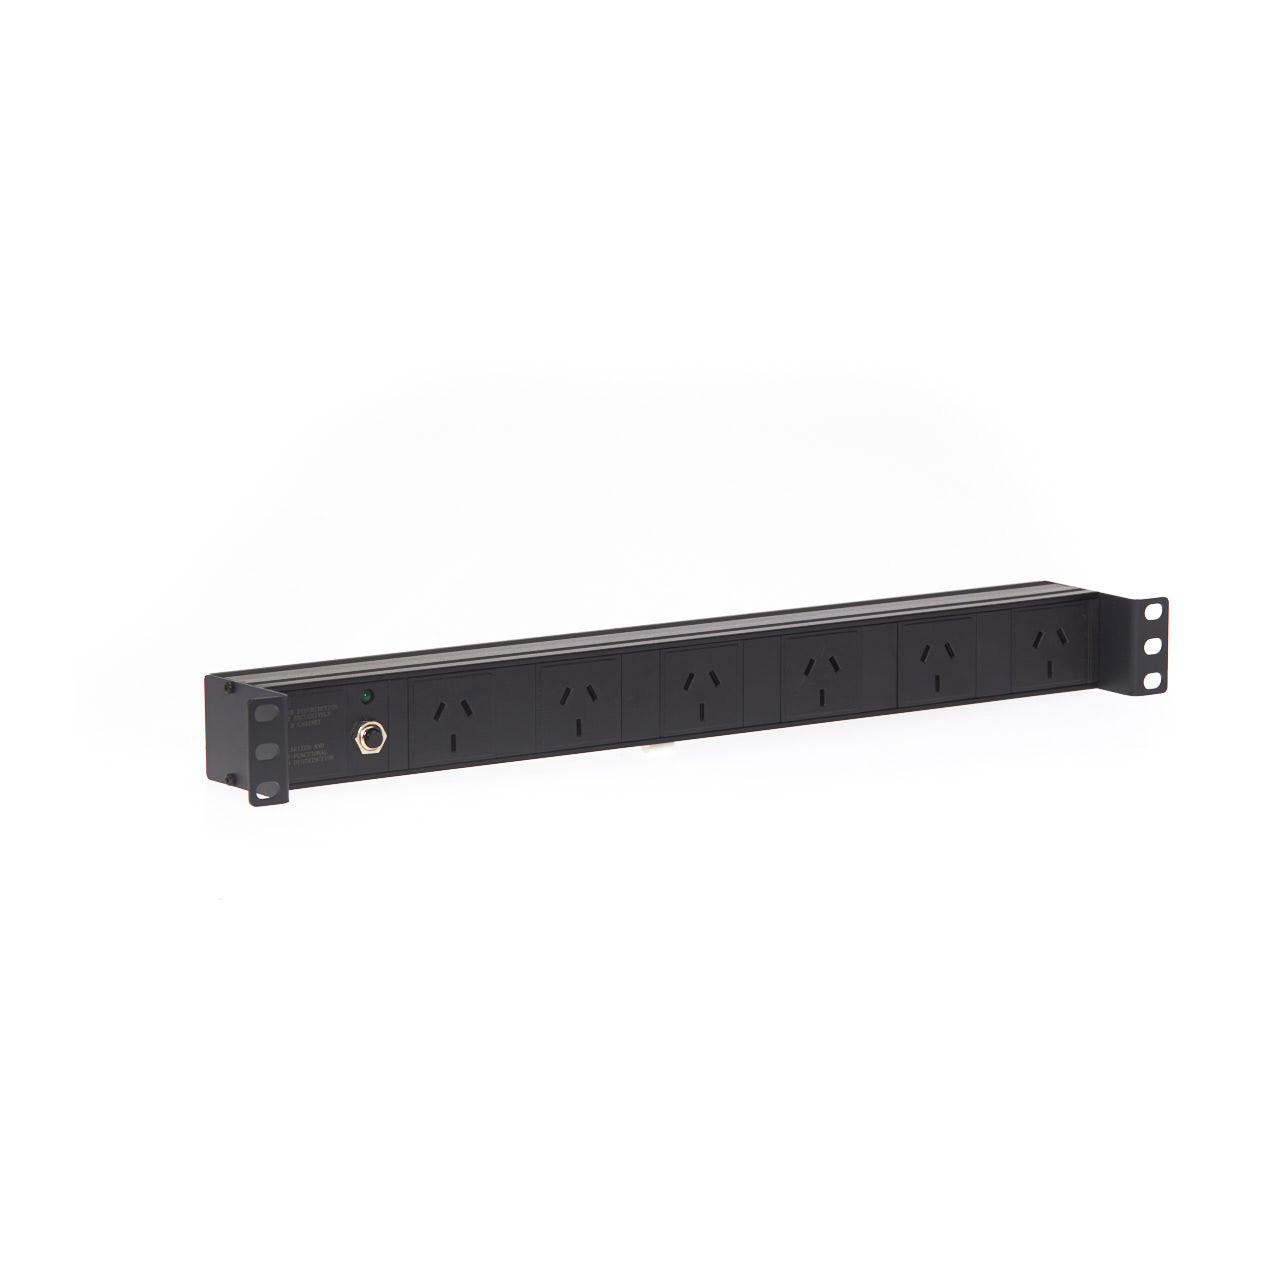 Image for 1RU 6 Way GPO Recessed Rack Mount PDU Power Rail CX Computer Superstore